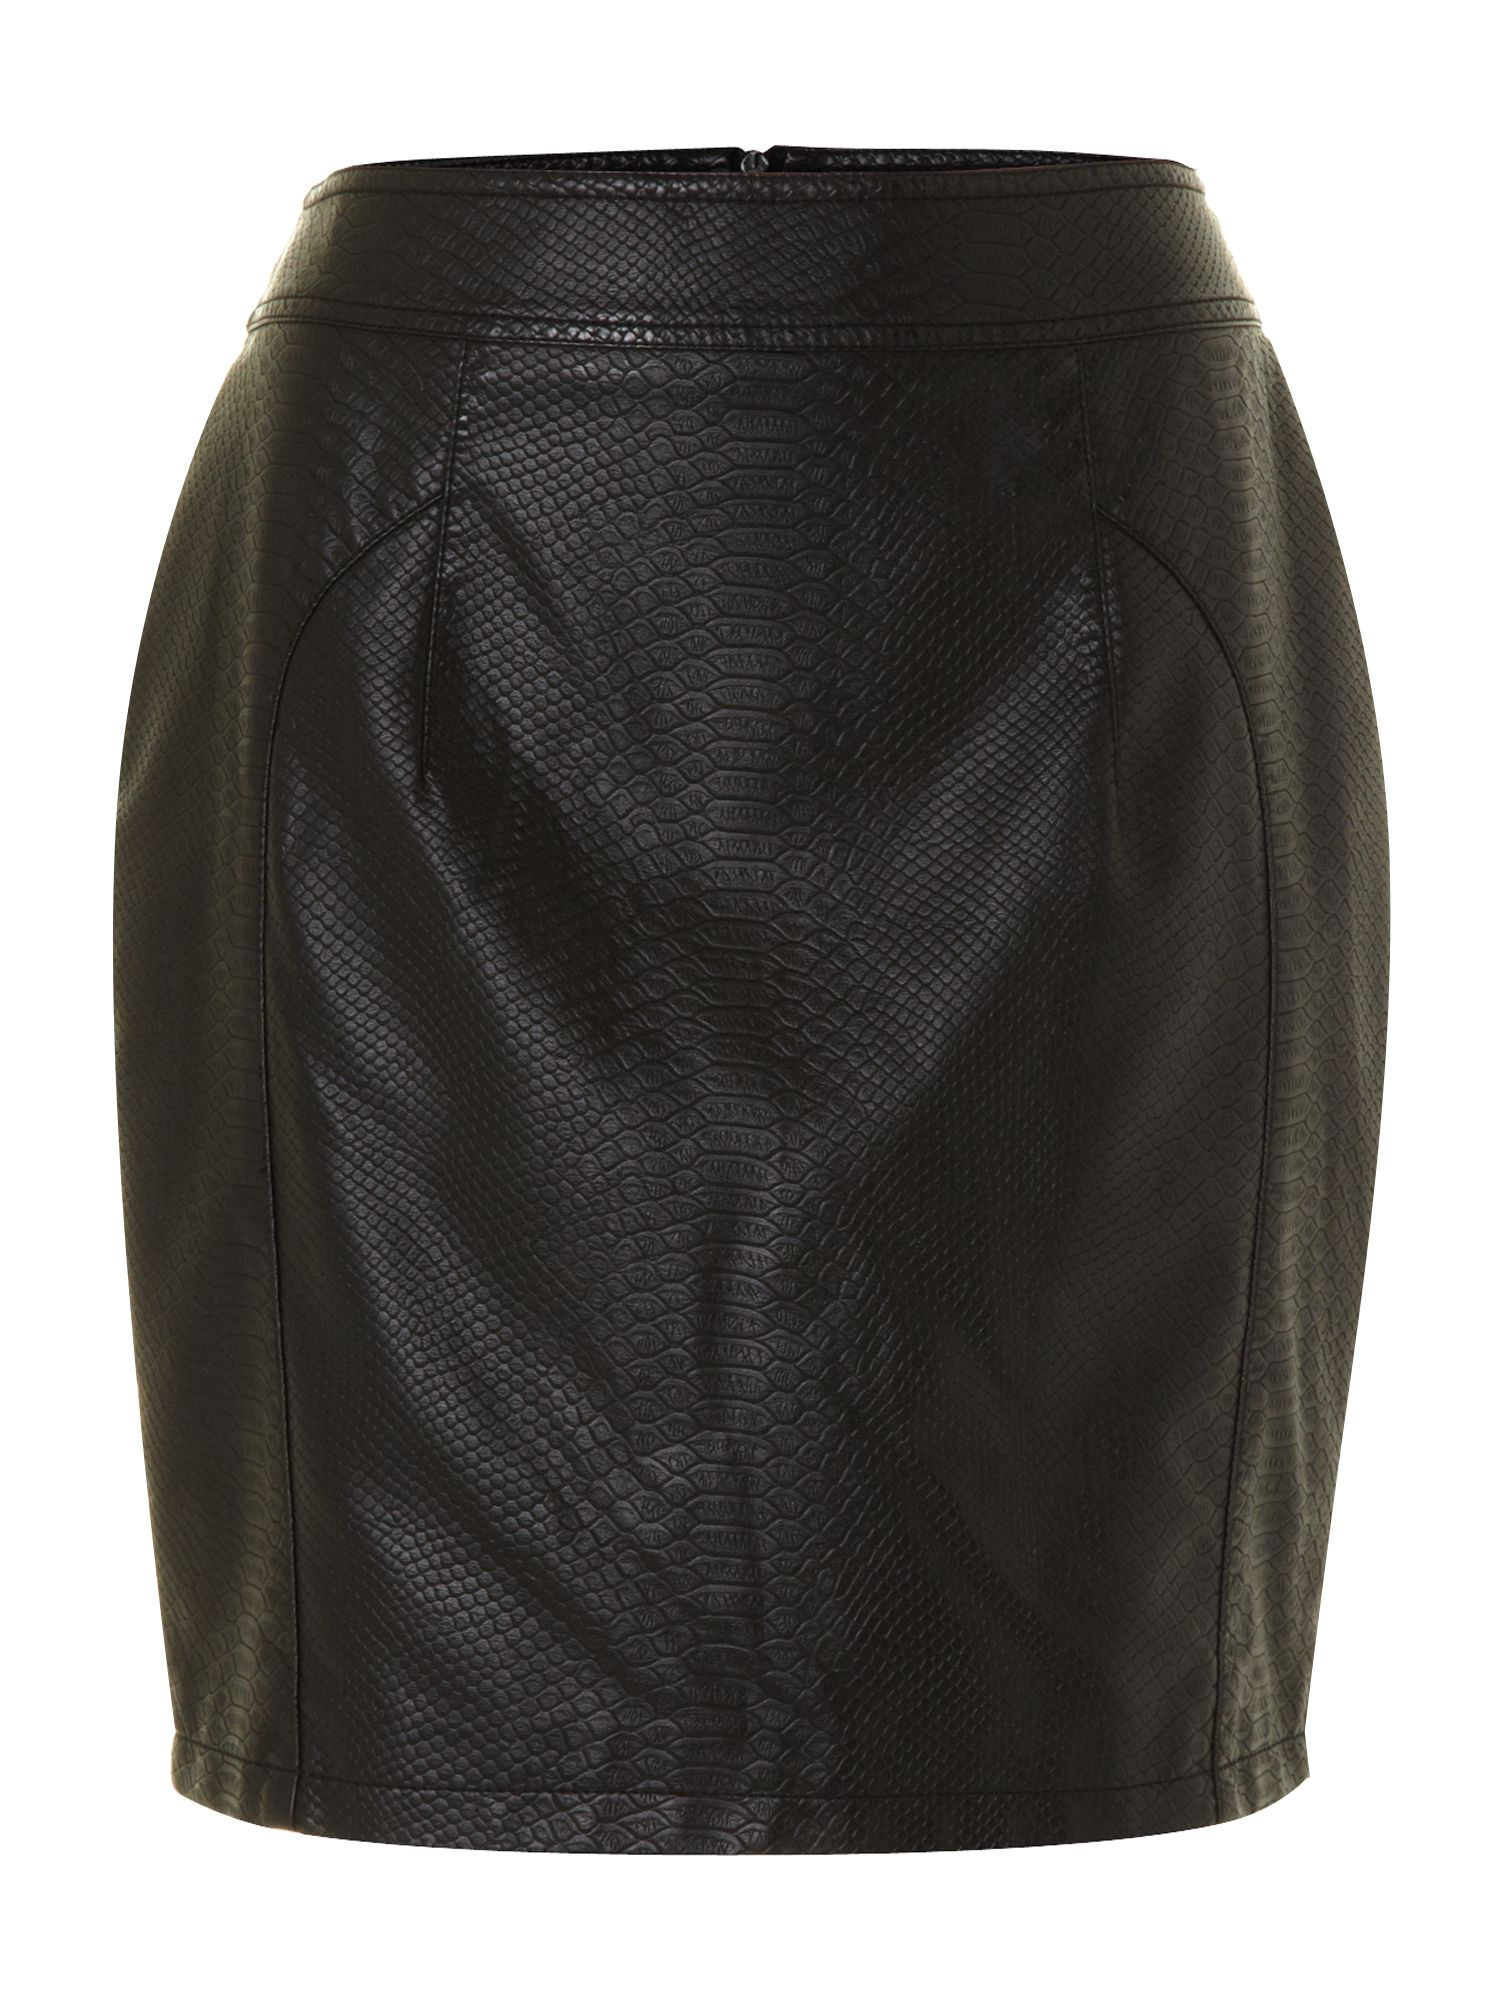 Embossed leather look skirt